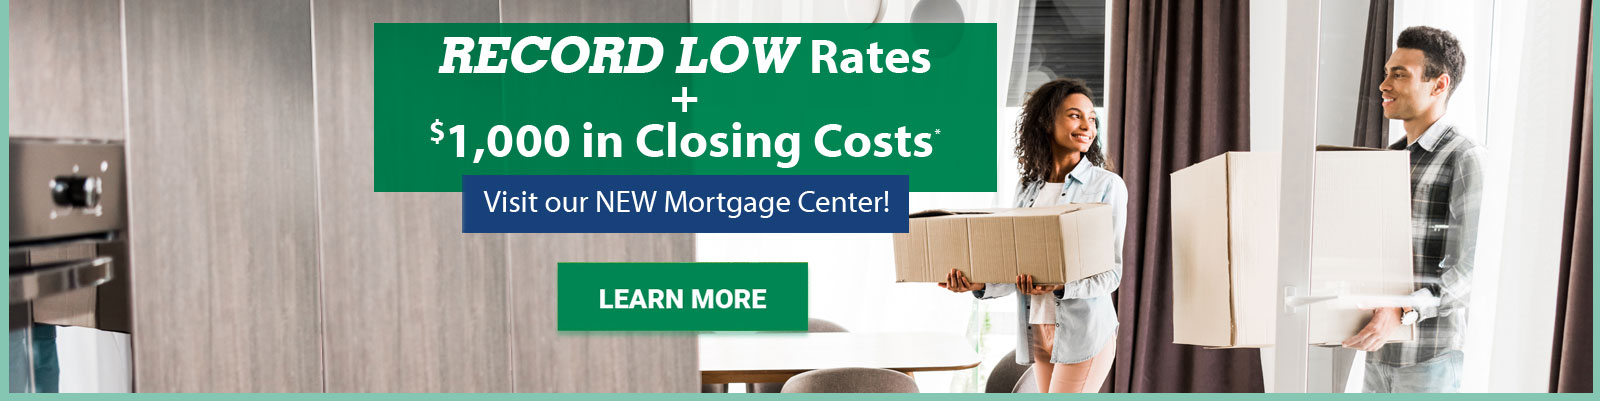 New Mortgage Center Special Rates